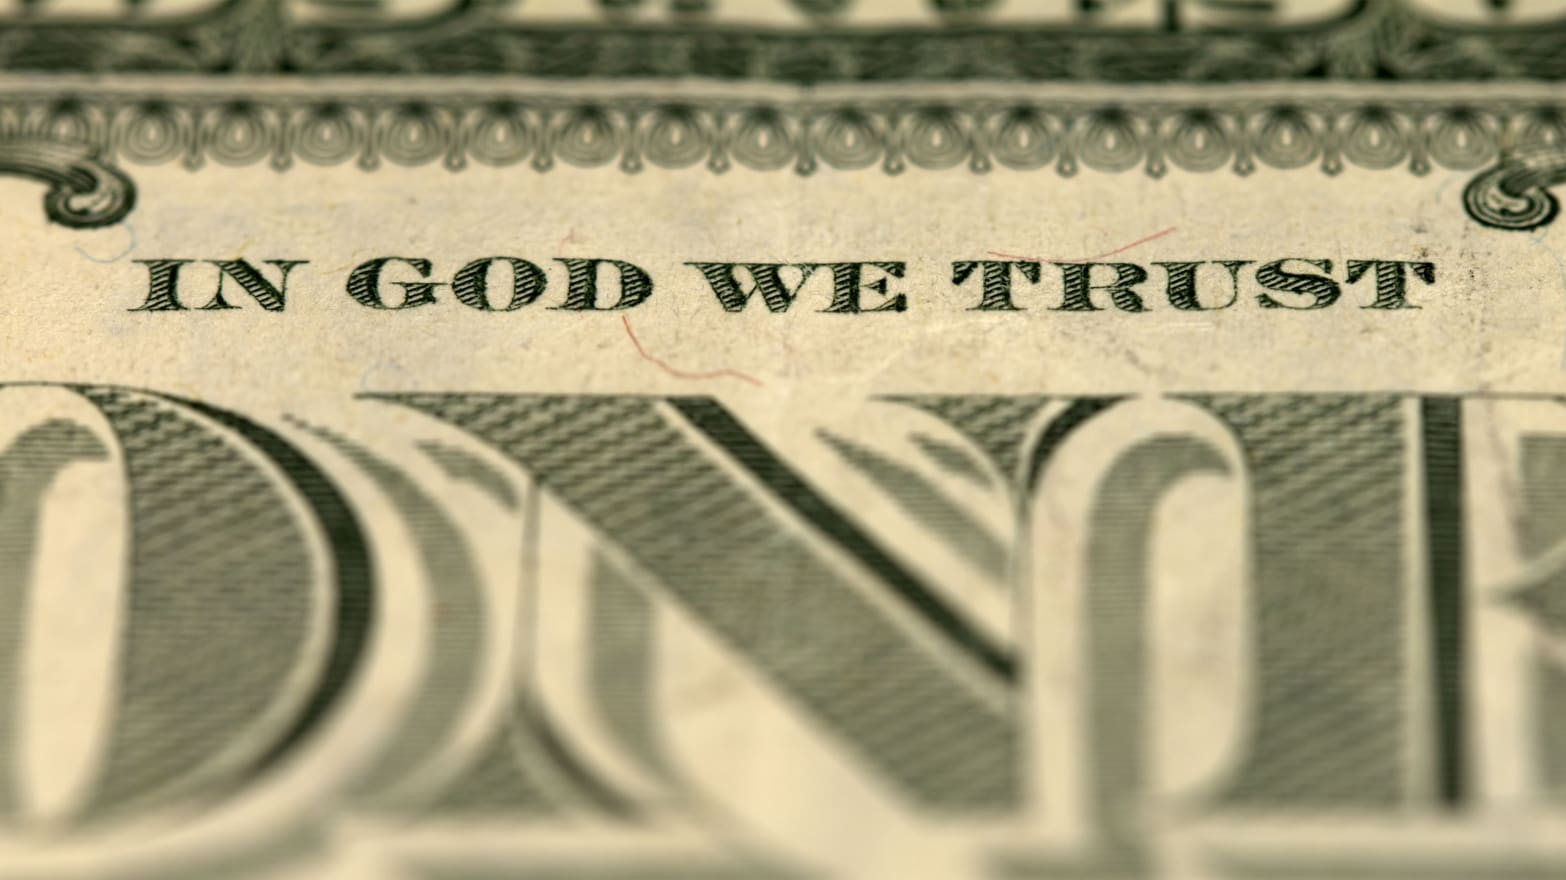 American National Motto: In God We Trust